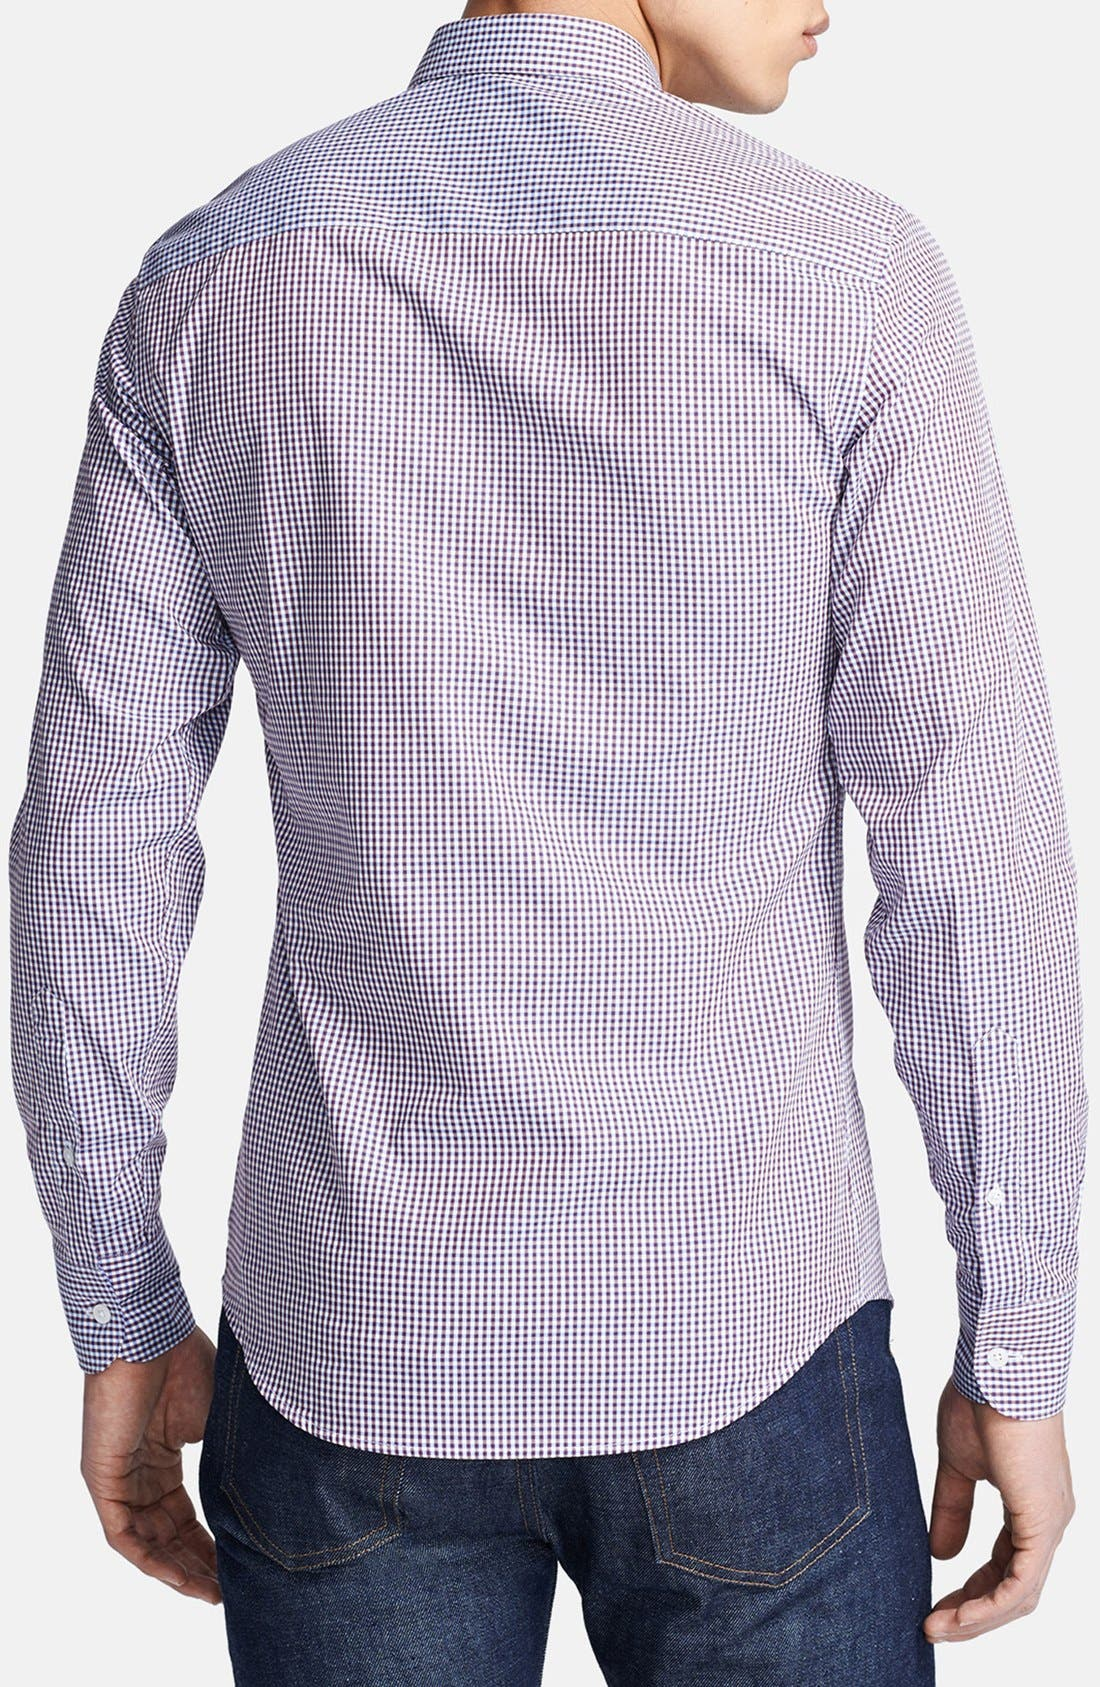 Alternate Image 2  - Z Zegna Microcheck Sport Shirt